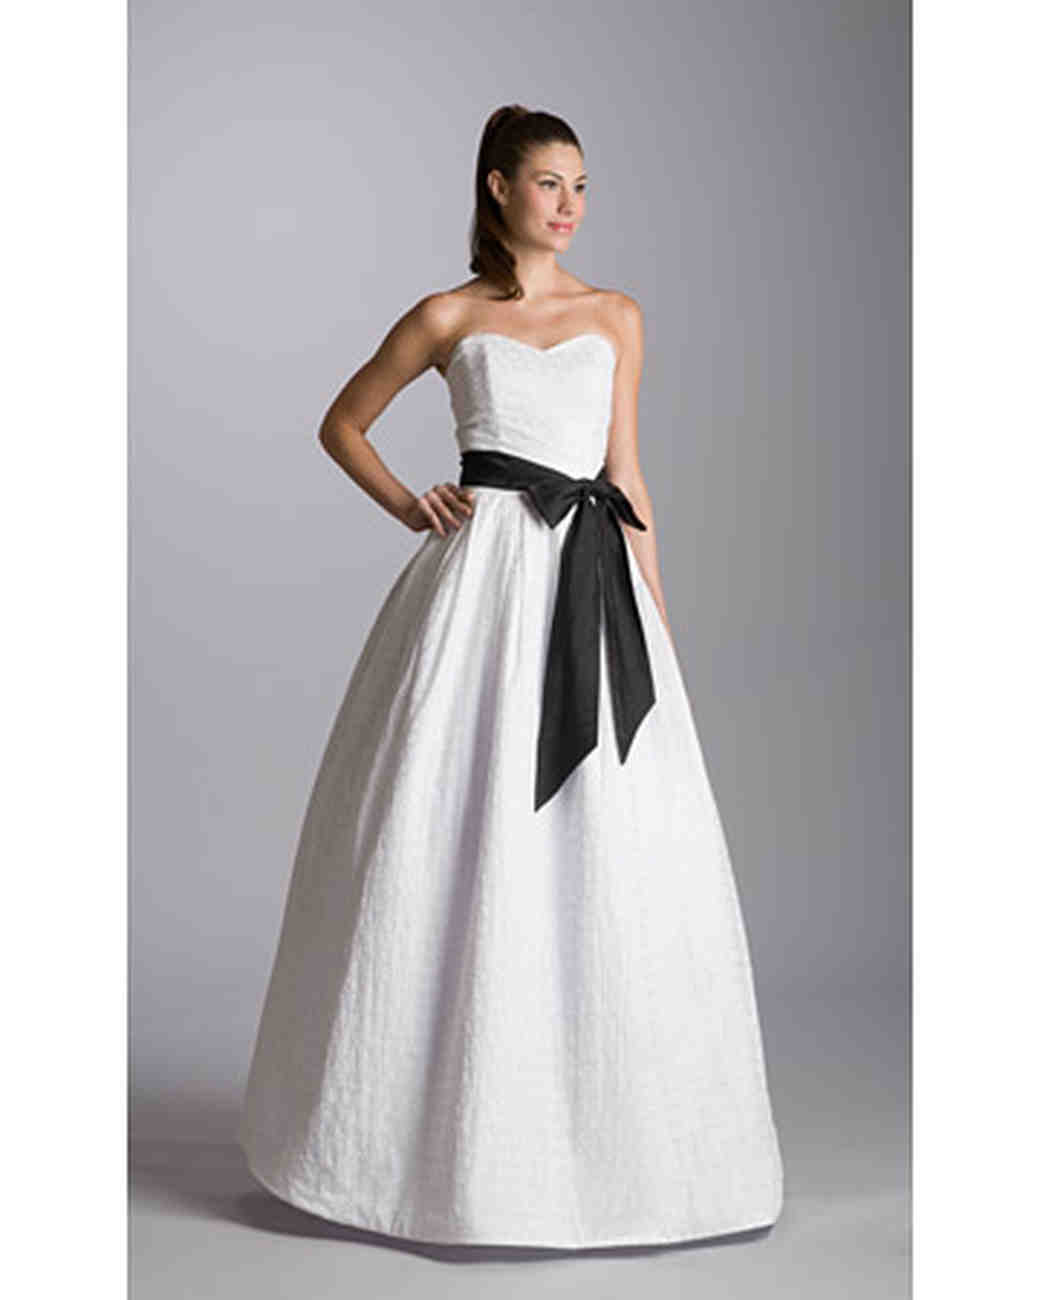 Wedding Dresses With Black Accents: Black and white wedding gown ...